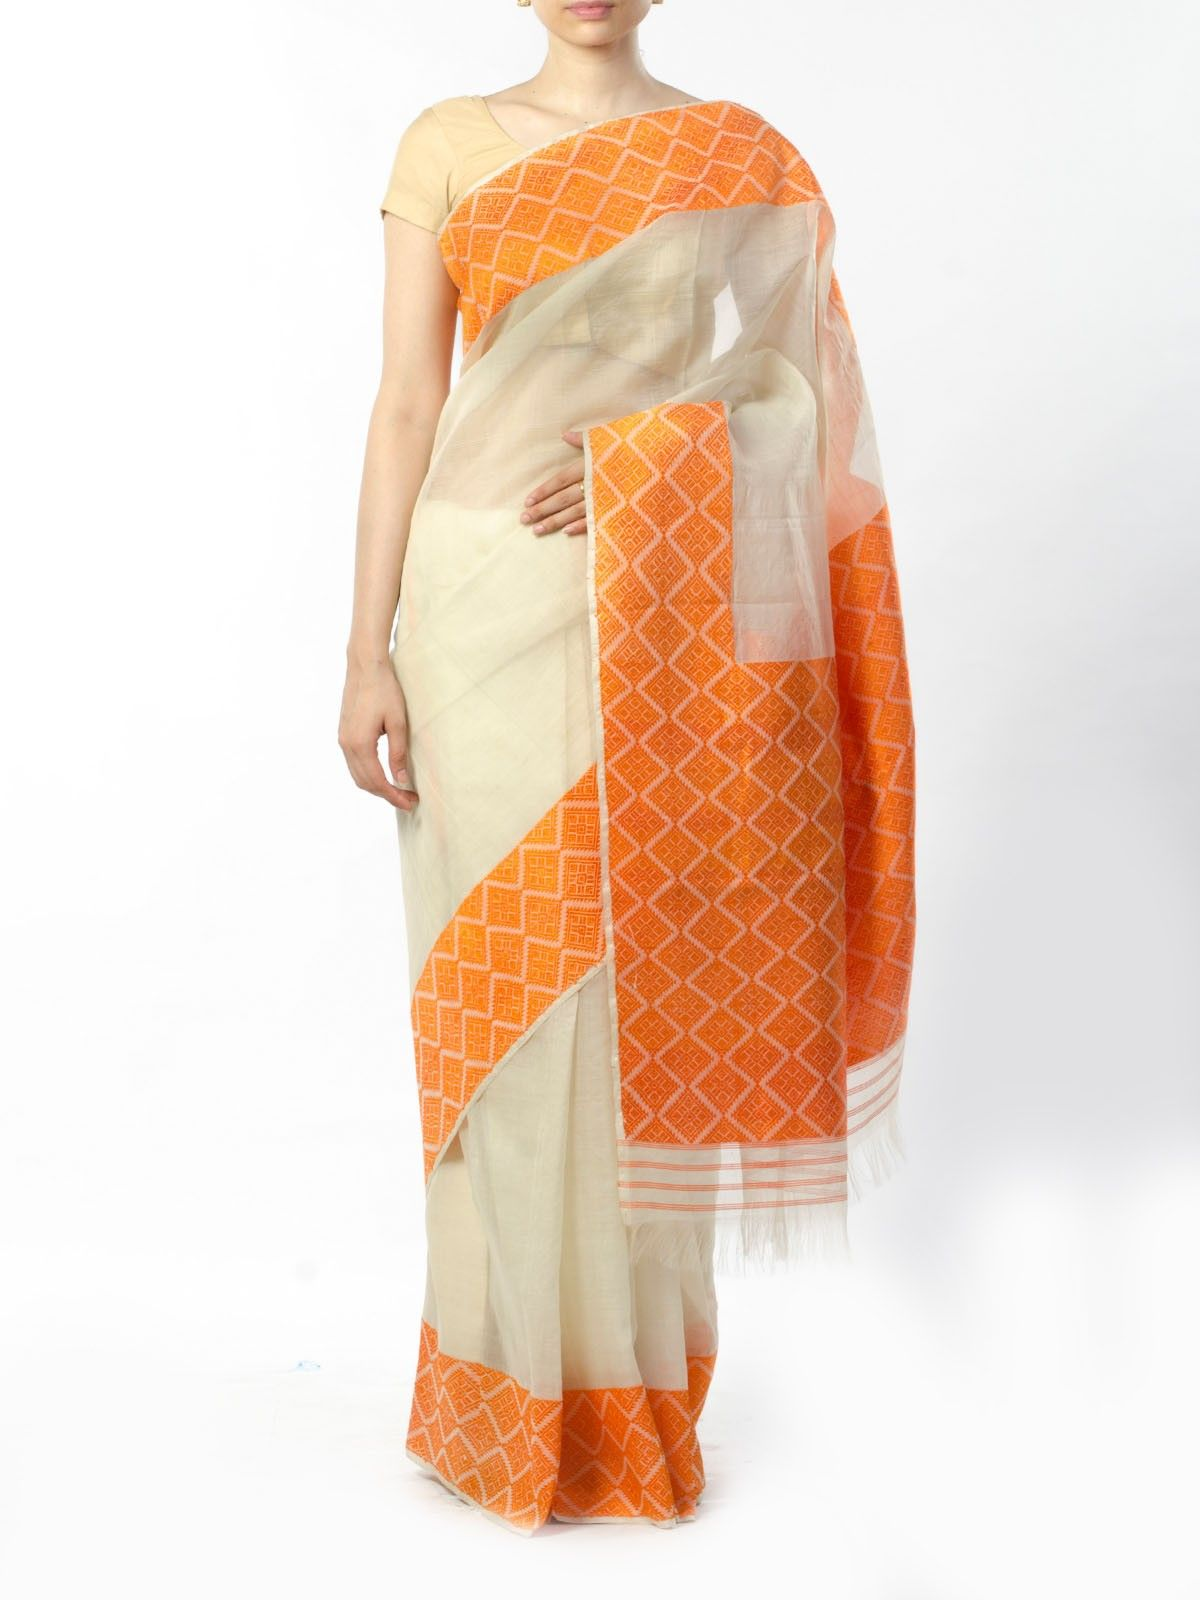 Off-White Muga Silk Saree with Orange Border